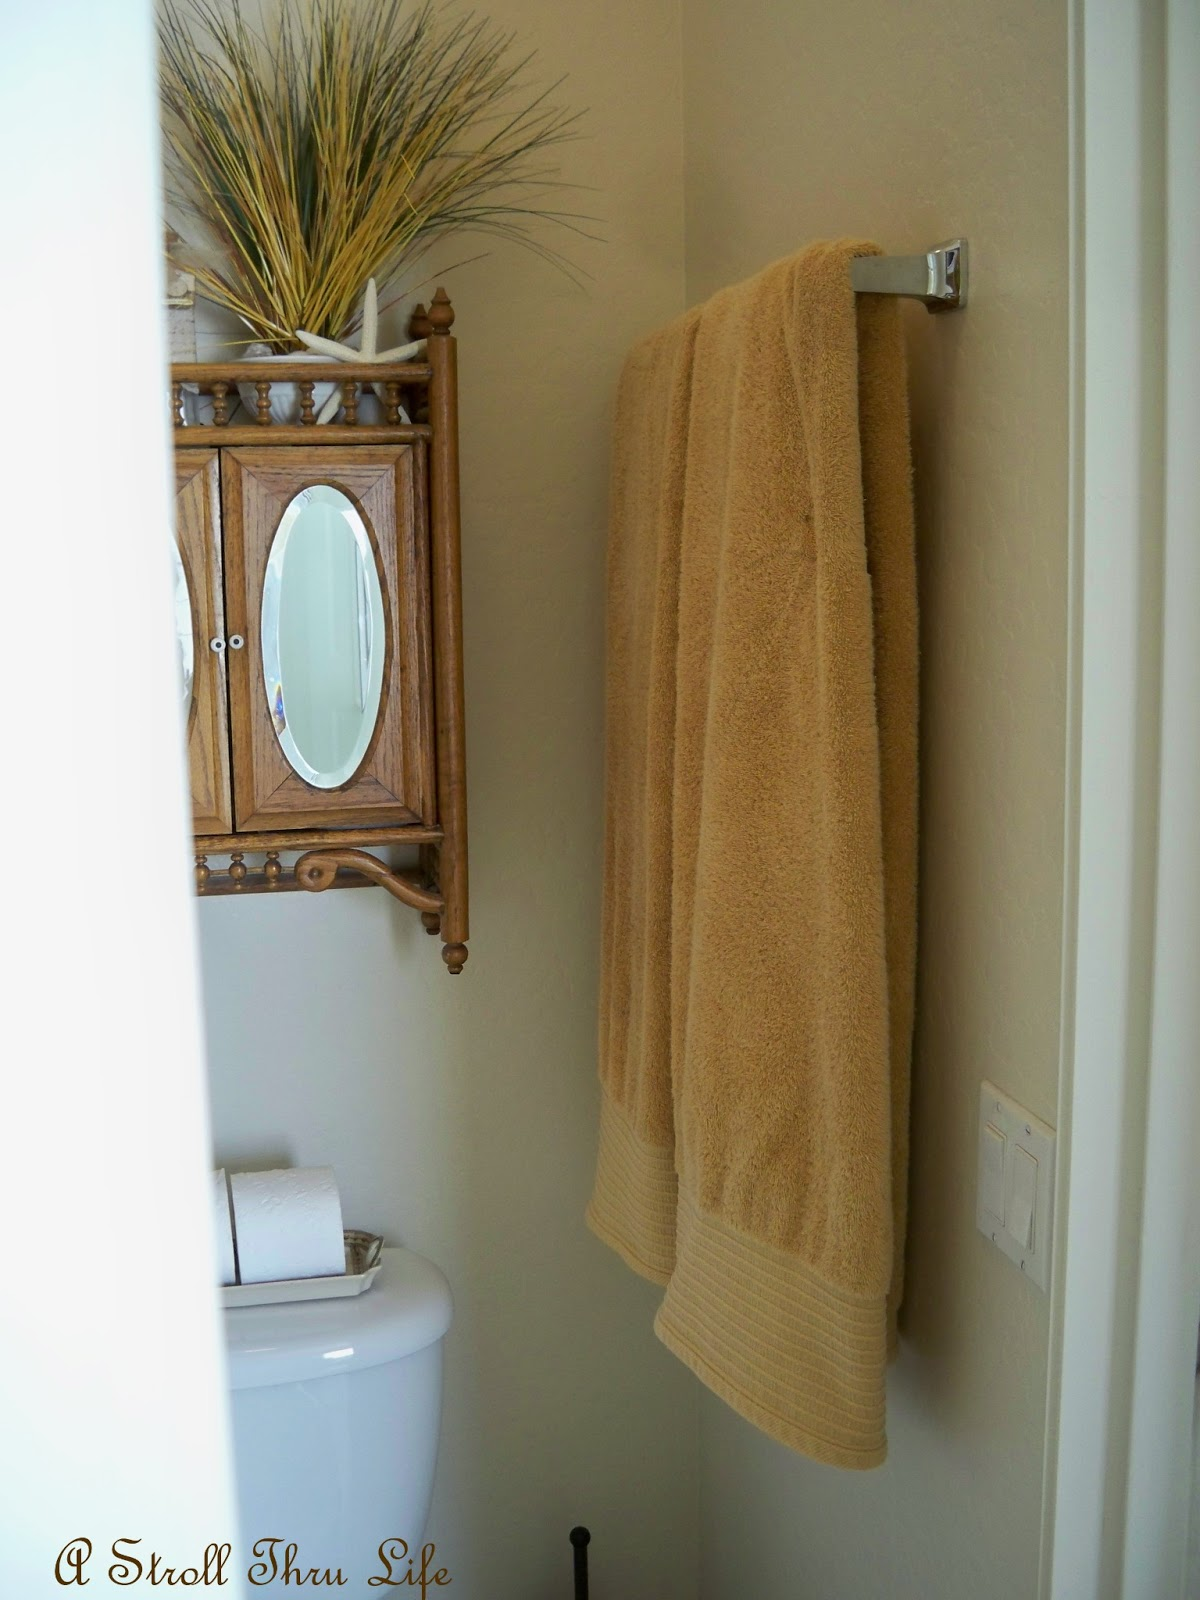 How to fold bathroom towels for hanging - I Don T Like To Hang A Wet Towel Folded I Like For It To Have Plenty Of Space To Air Dry Completely So It Usually Gets Draped Over The Ledge Again To Dry